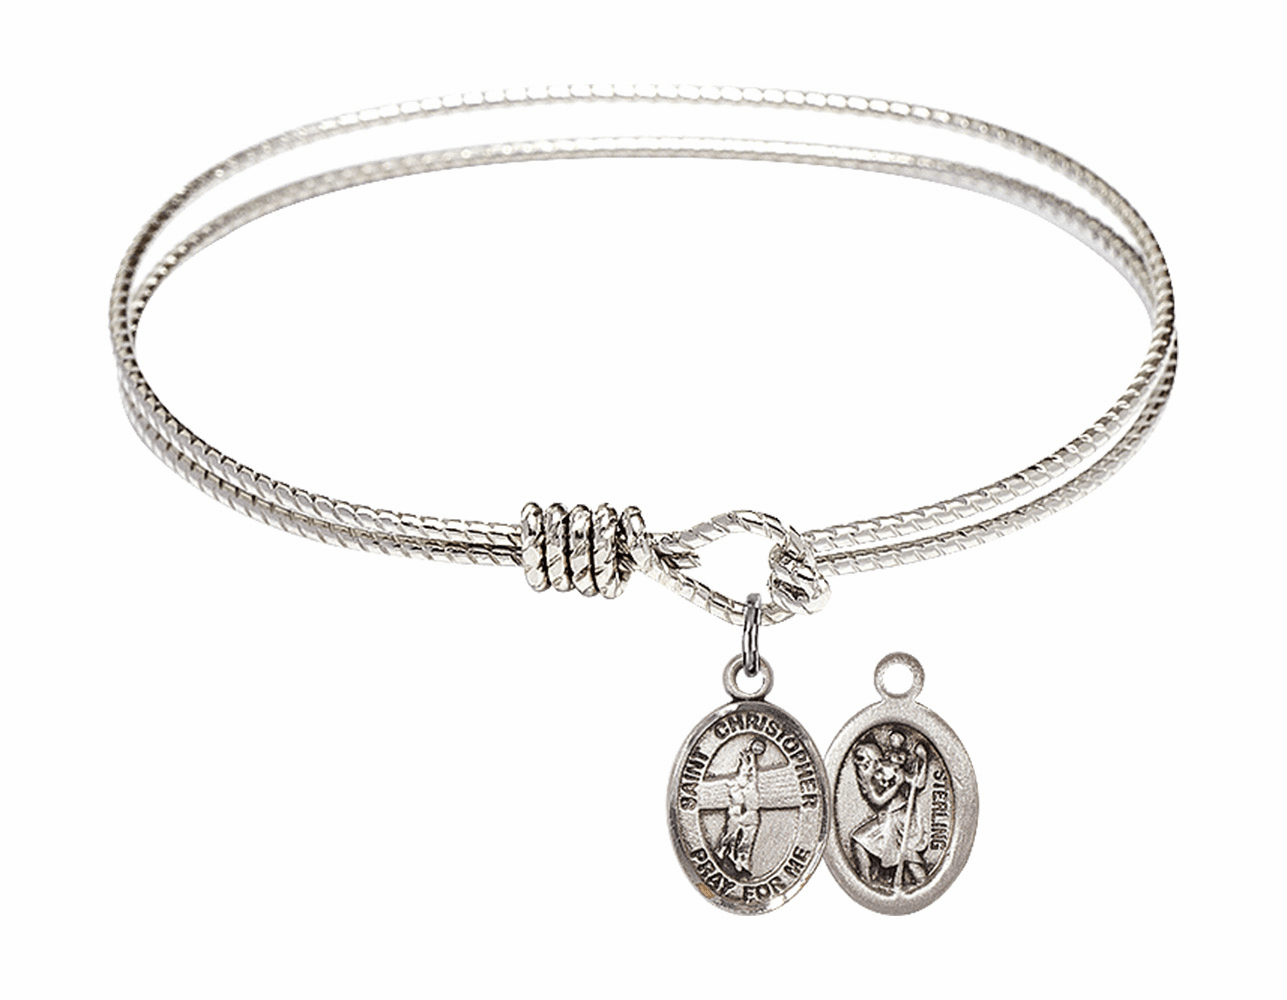 Twist Round Eye Hook St Christopher Volleyball Bangle Charm Bracelet by Bliss